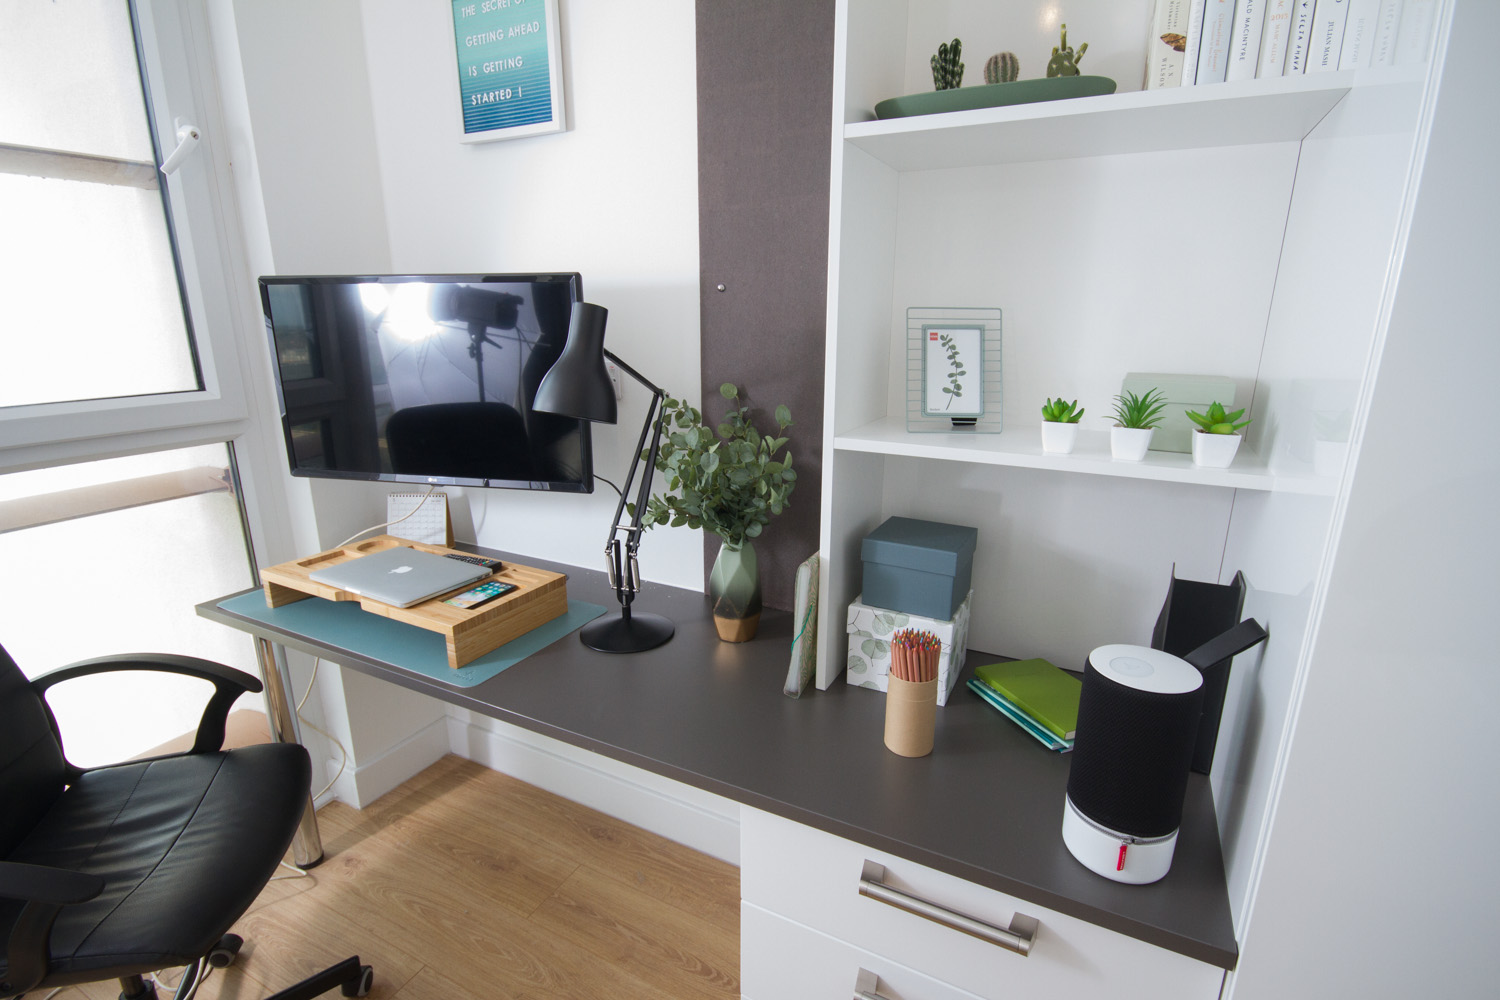 Standard Studio Desk at CODE Student Accommodation Coventry